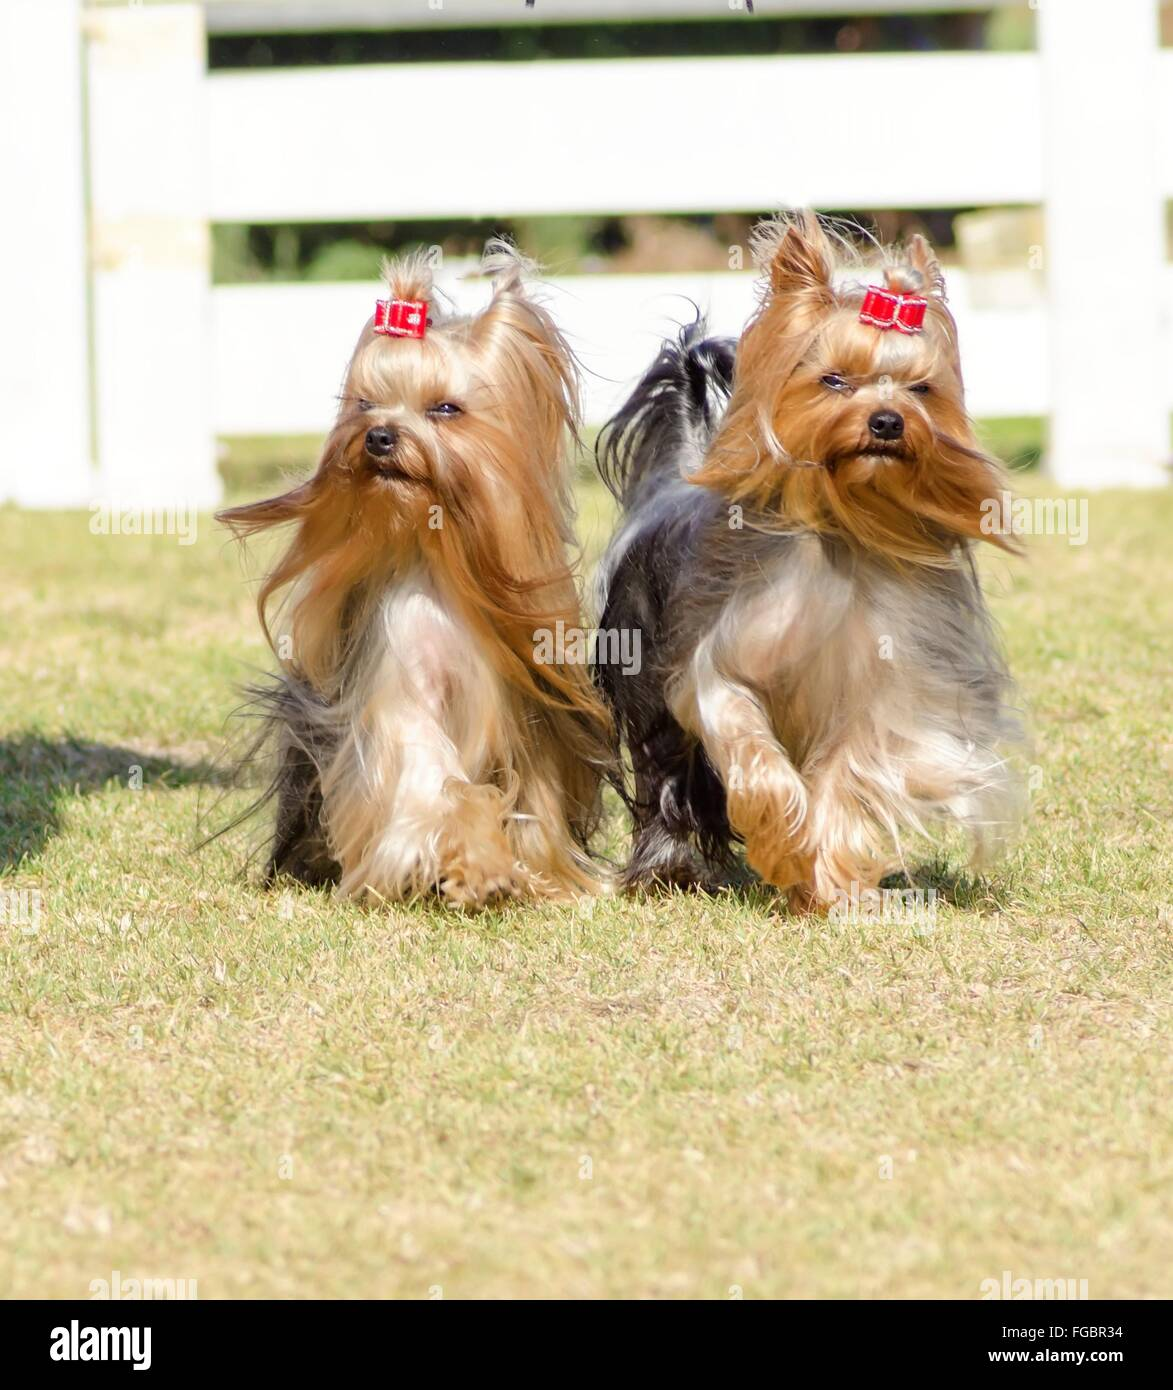 A portrait view of two small gray black and tan Yorkshire Terrier dog walking on the grass, with their head coat - Stock Image